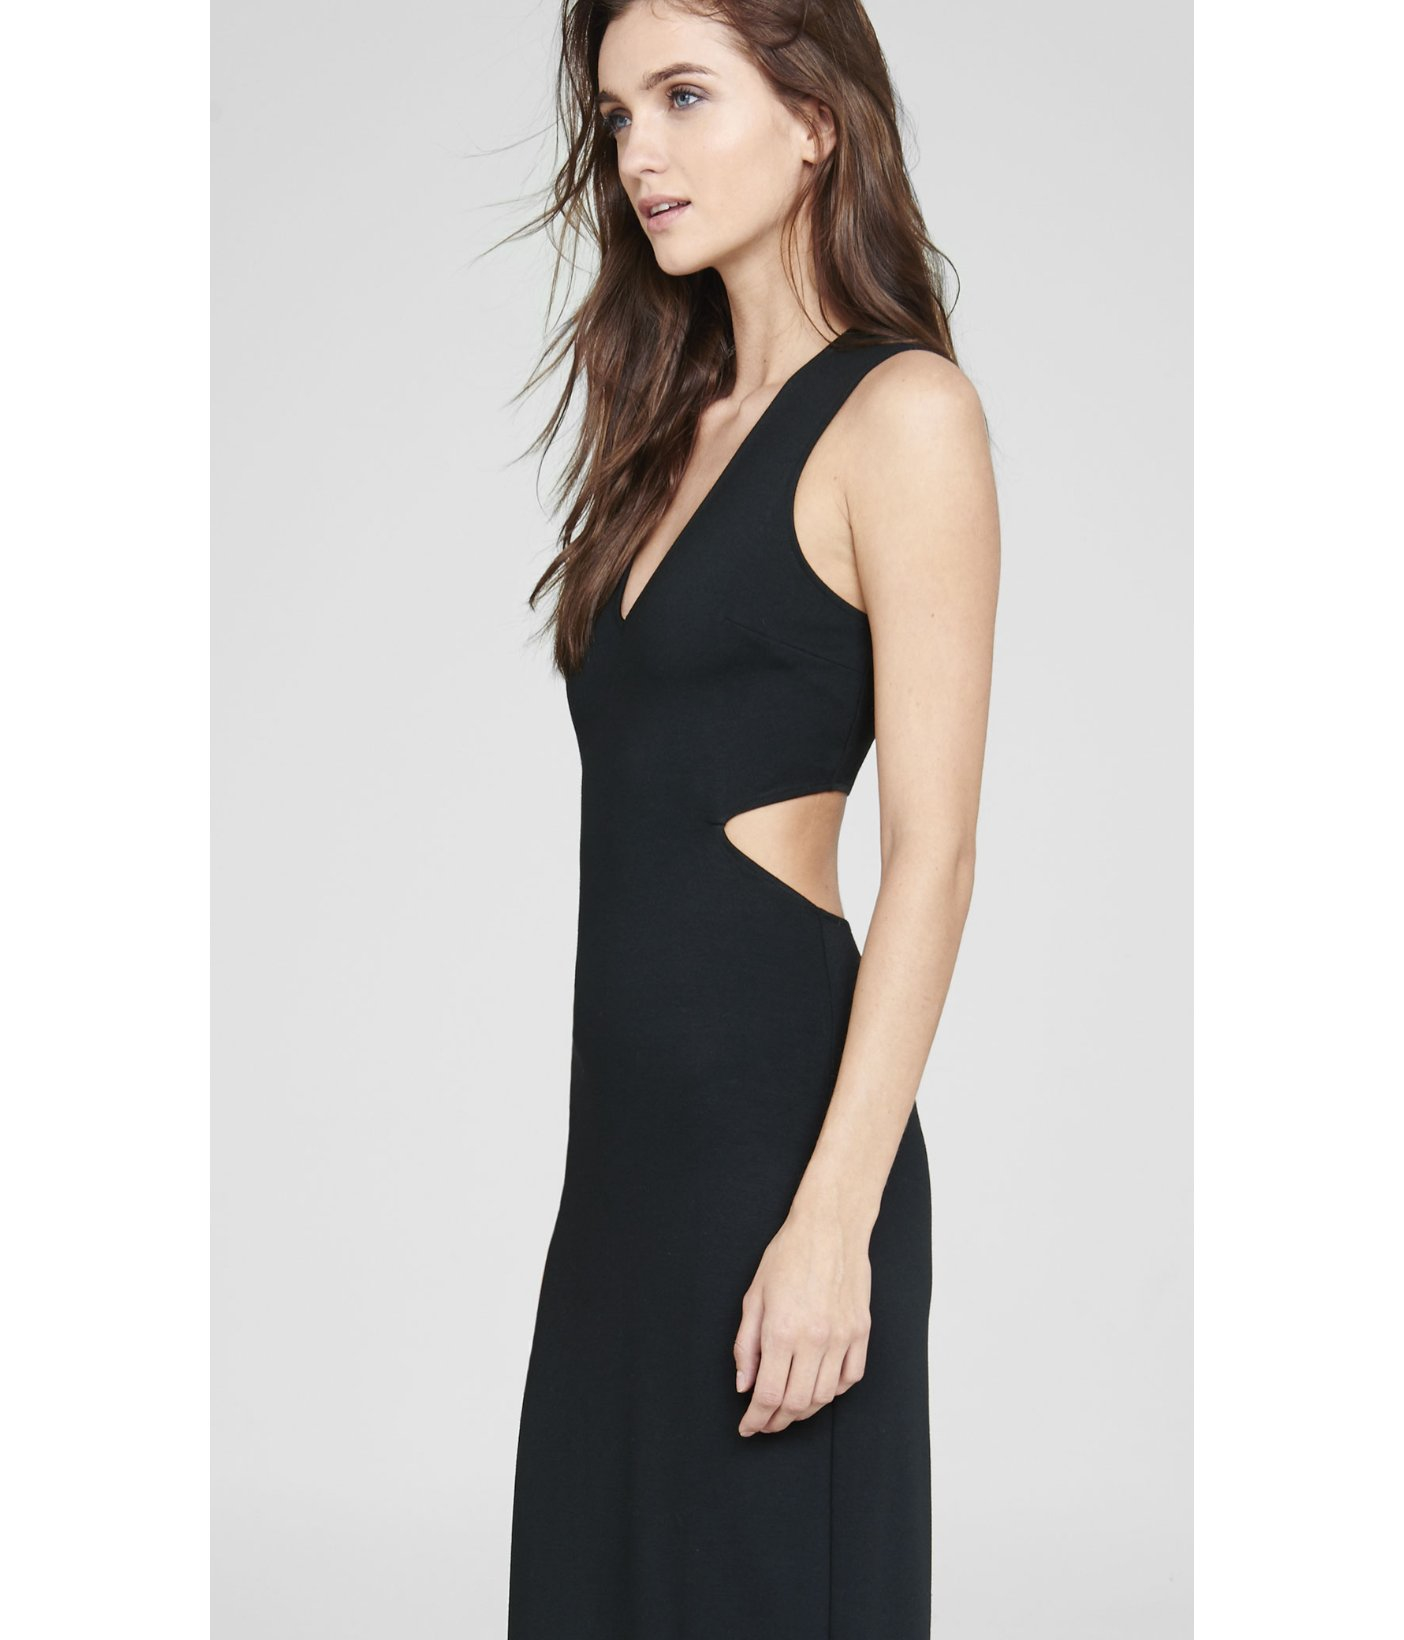 5e6eb3a7747 Express Black Deep V-neck Cut-out Sleeveless Maxi Dress in Black - Lyst